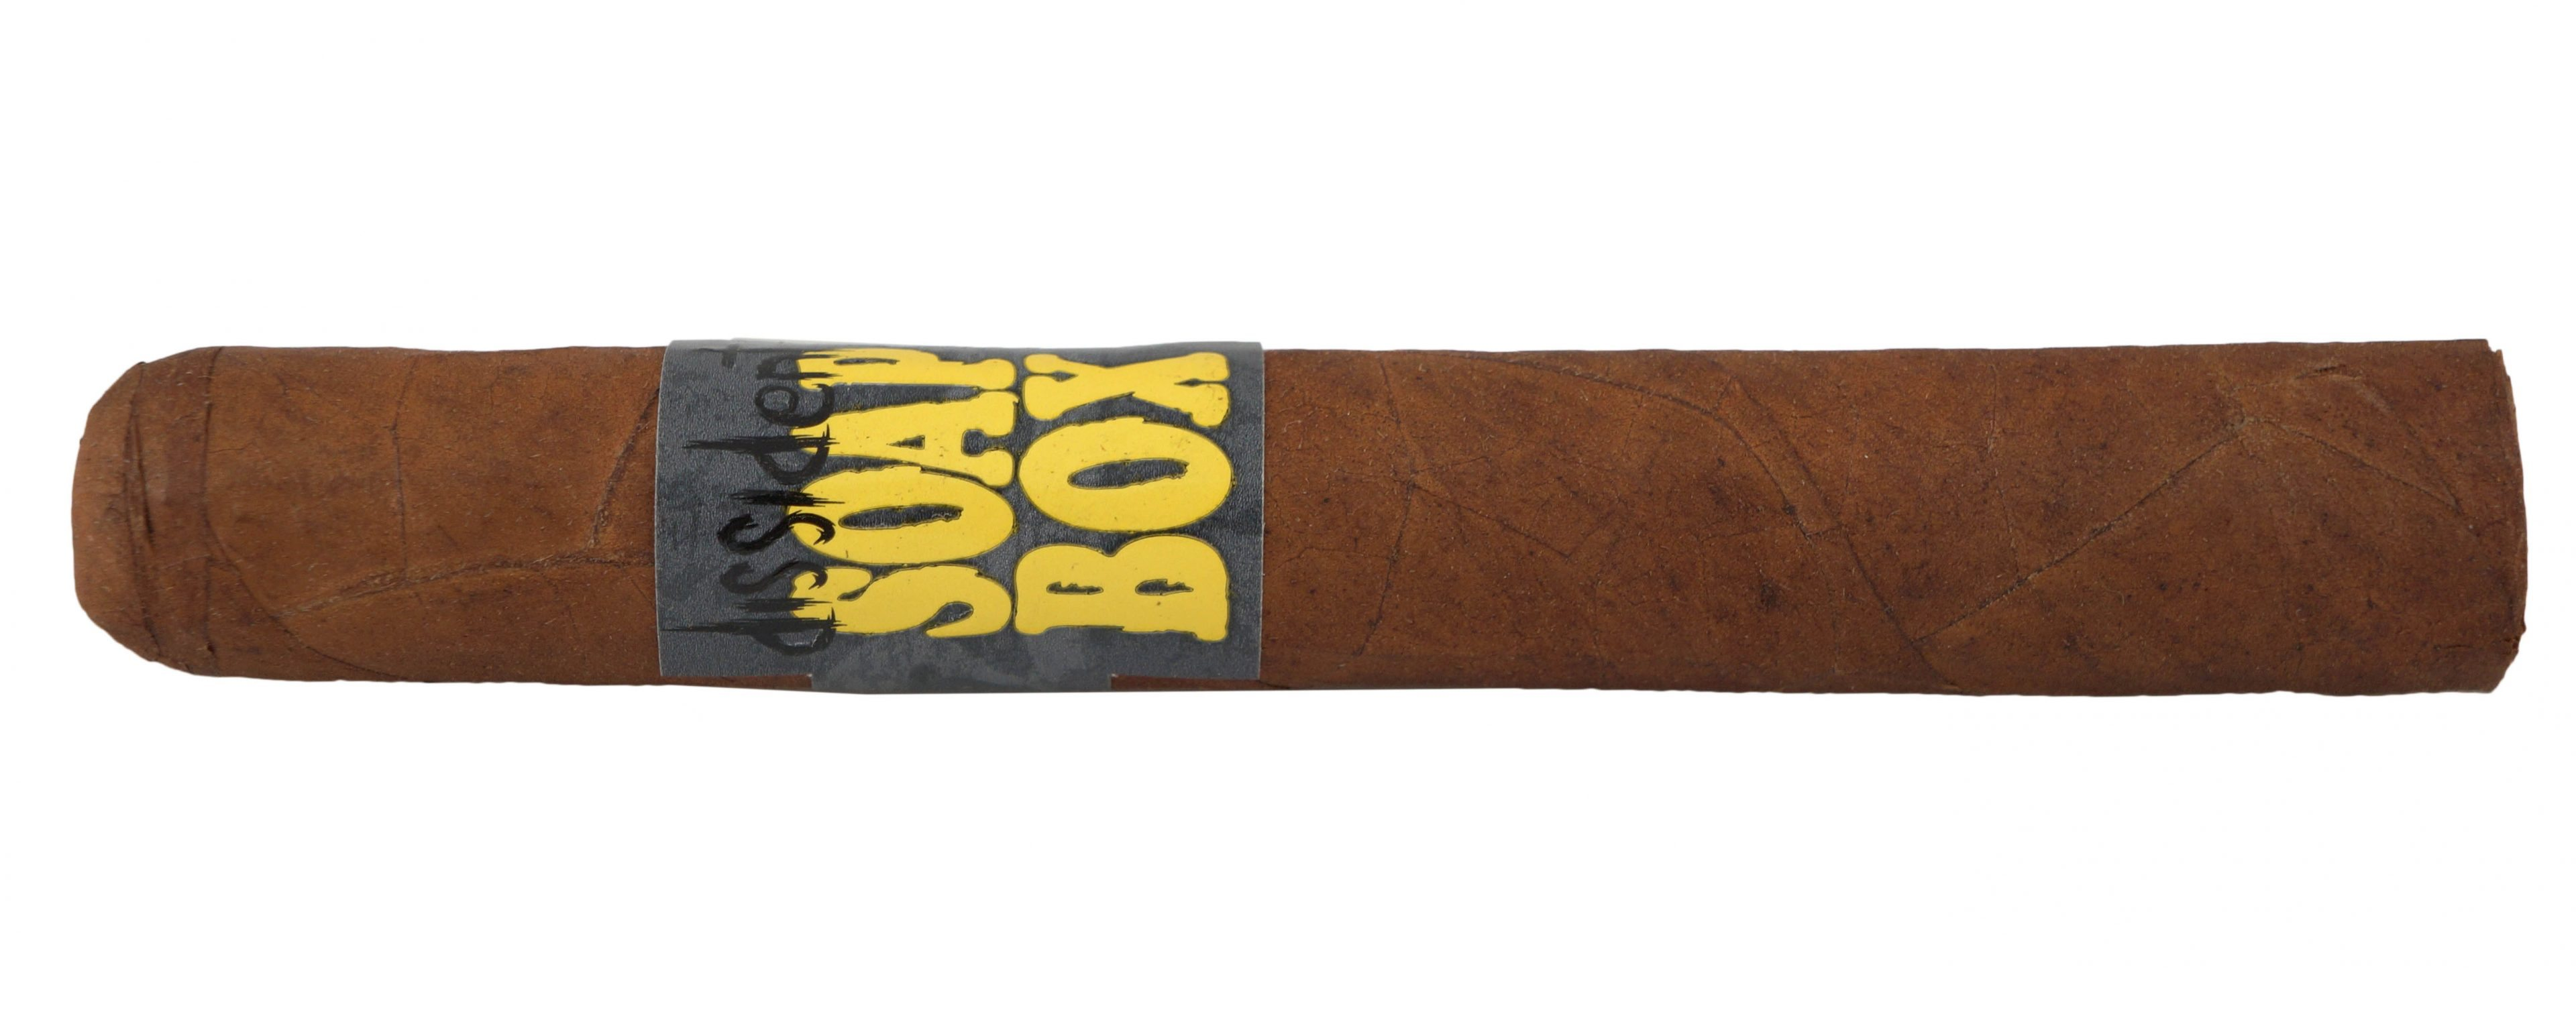 Blind Cigar Review: Dissident | Soap Box Rant